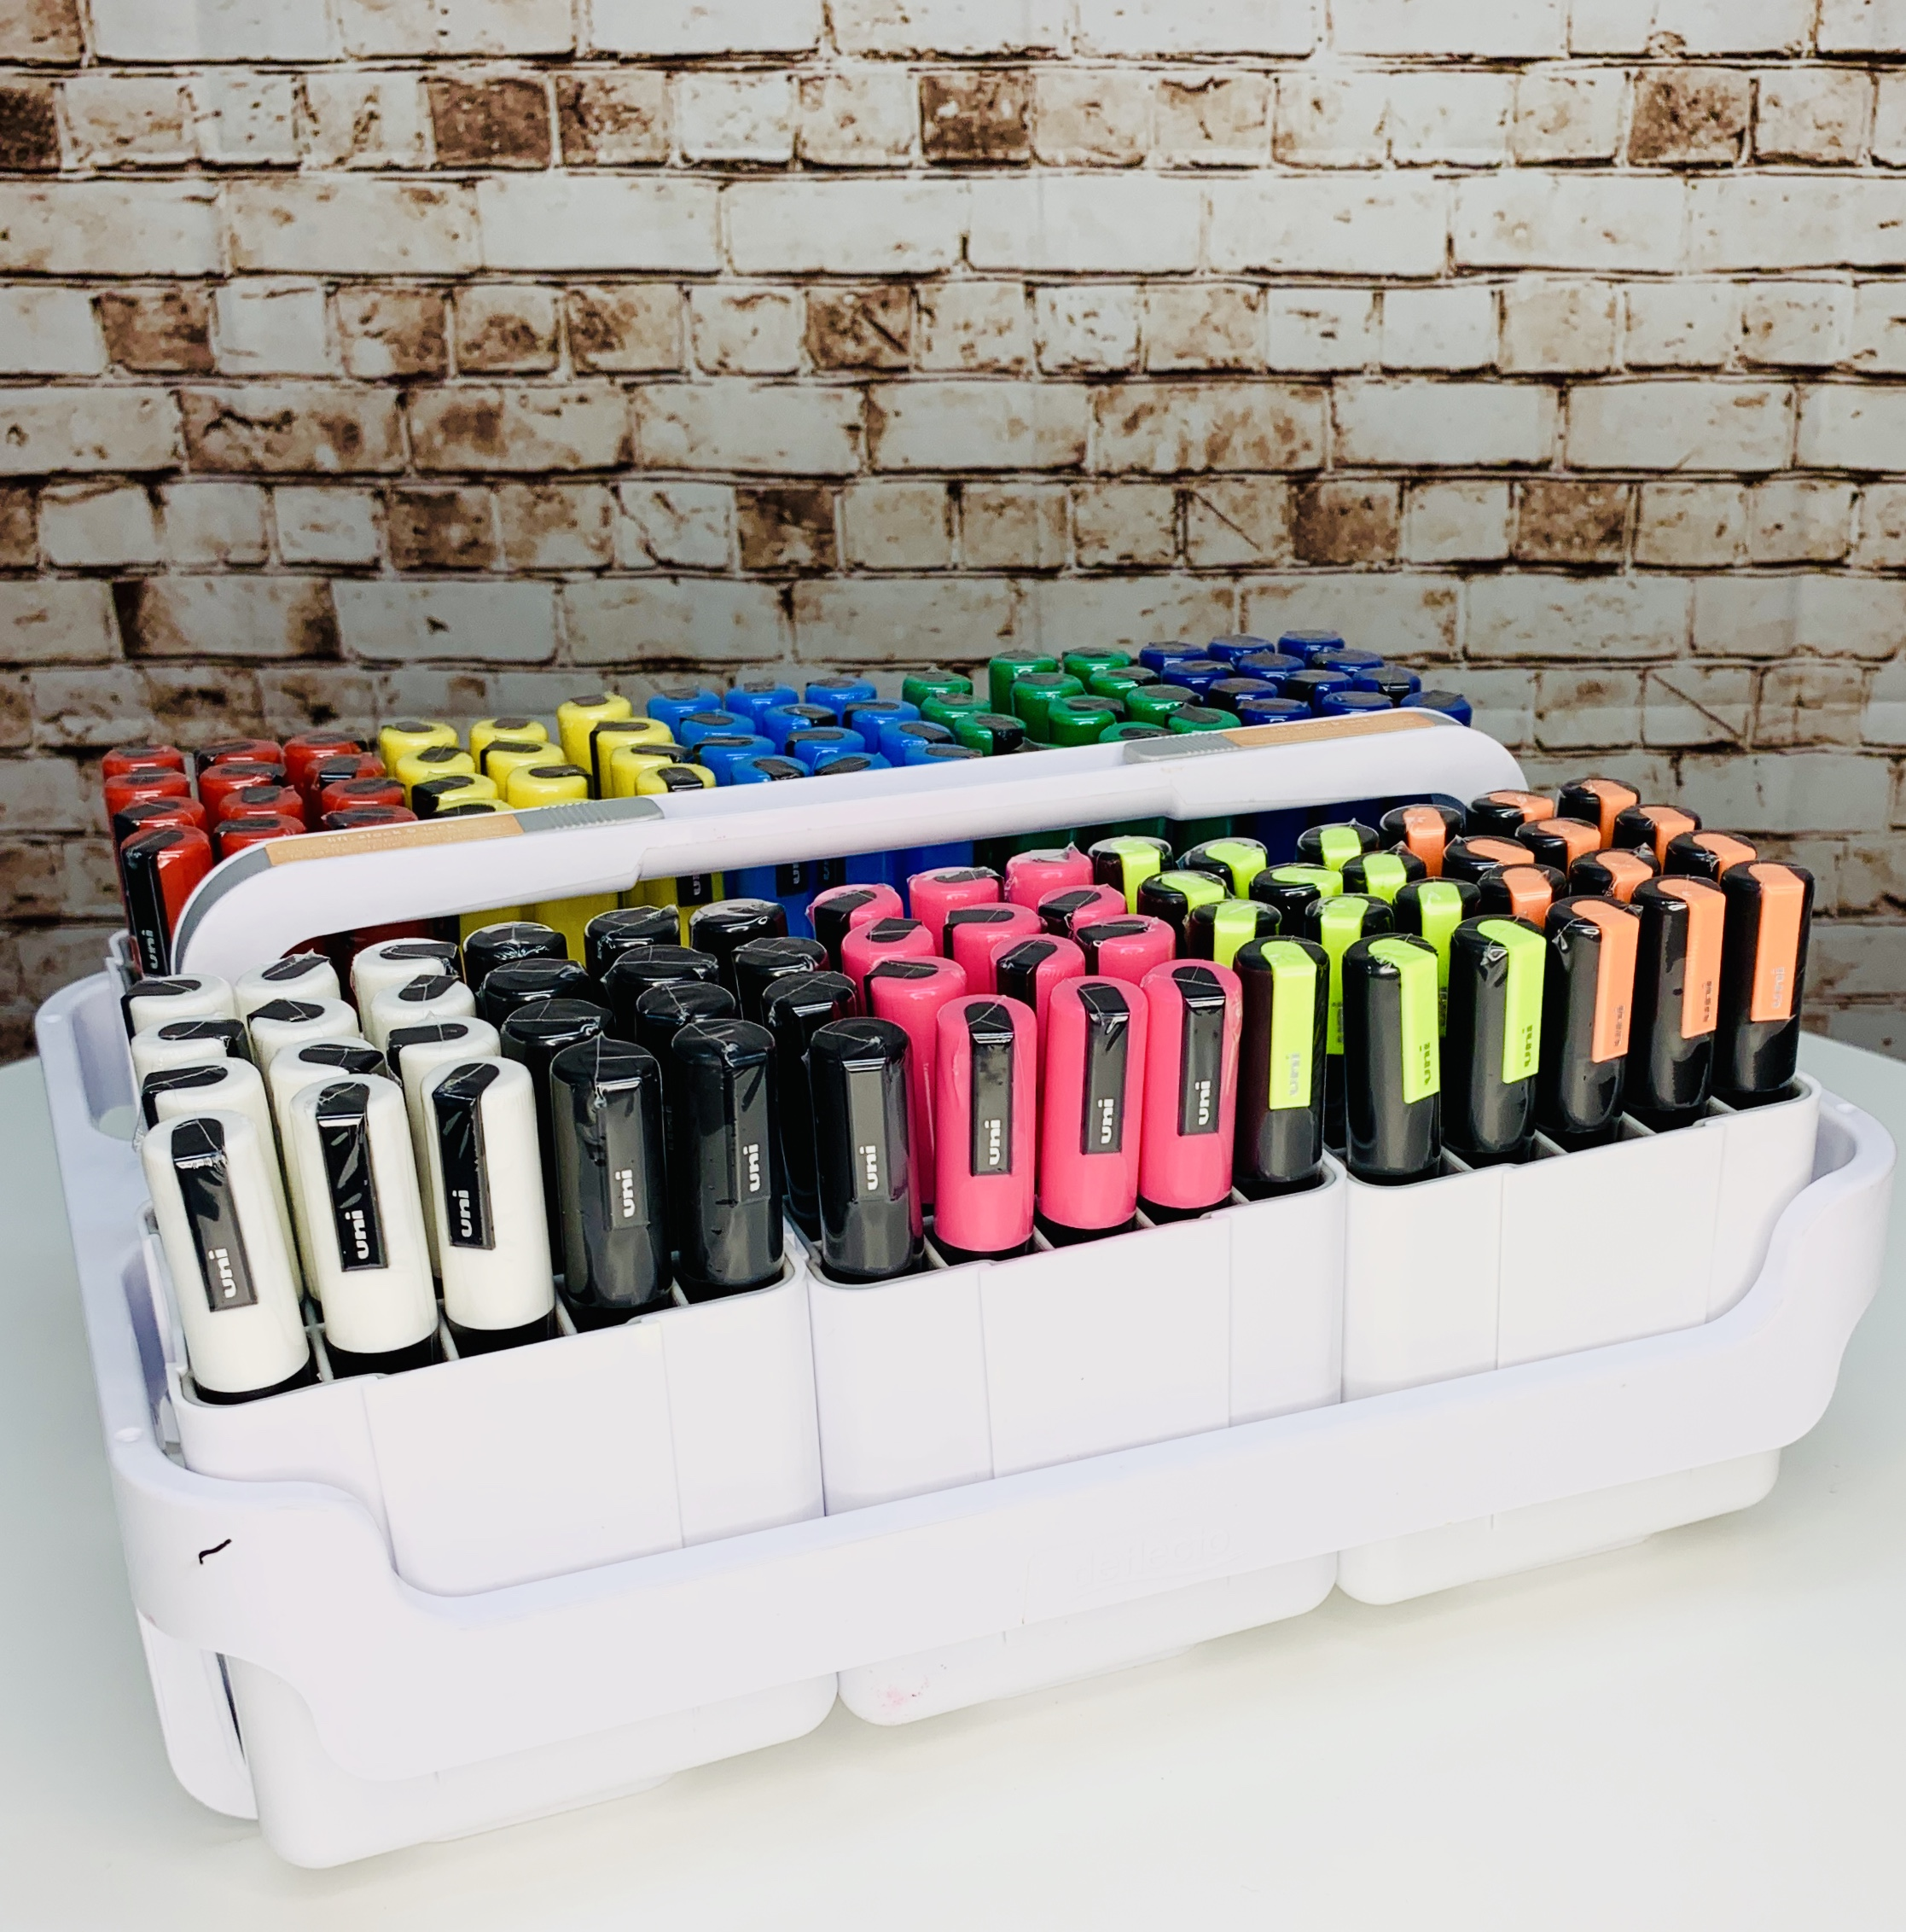 Storage Idea For Holding Your Posca Pc 5m And Or Pc 3m Paint Marker Pens Poscart